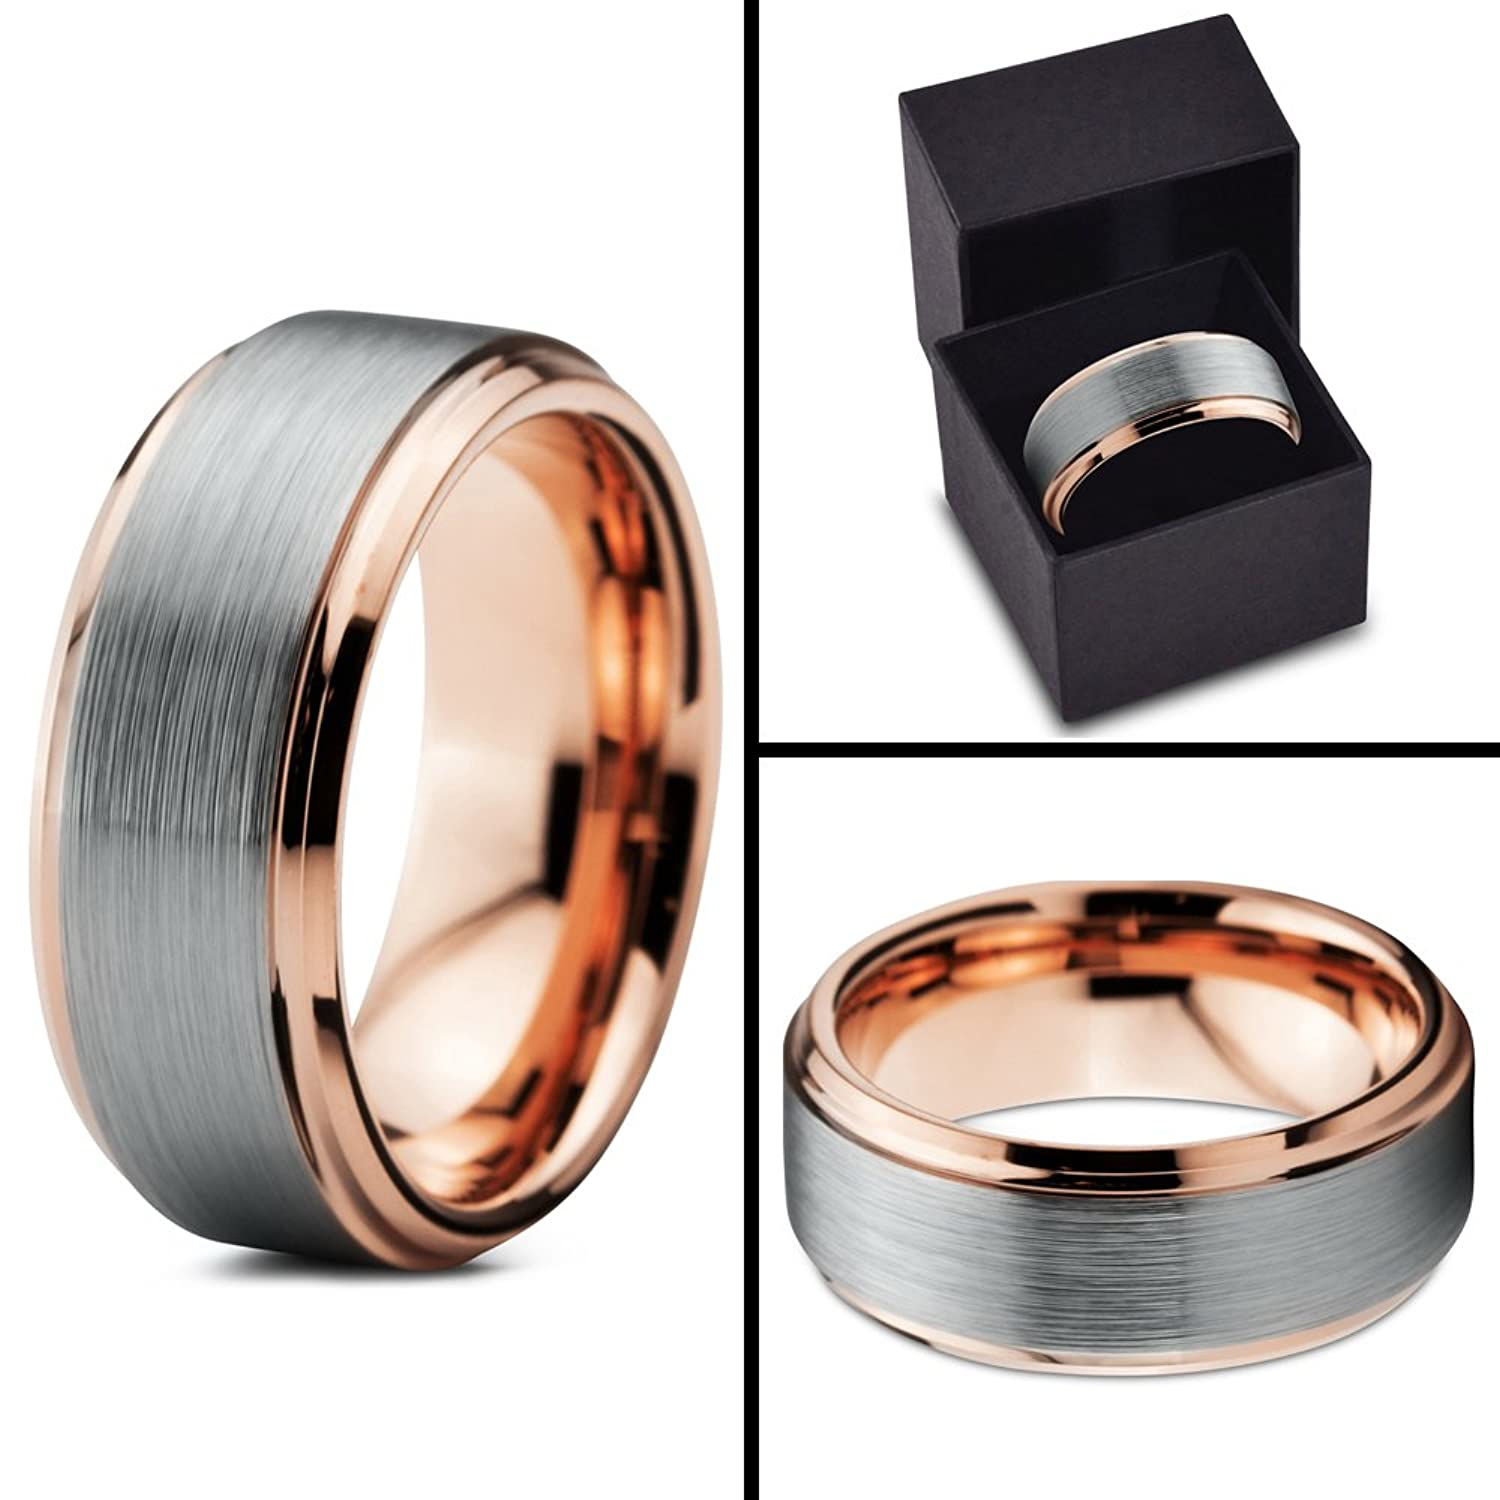 s goldsmiths showcase gold strip smooth ring white carat and mens wedding metal of mccaul men hammered bi shown combines bands rose a the with band here